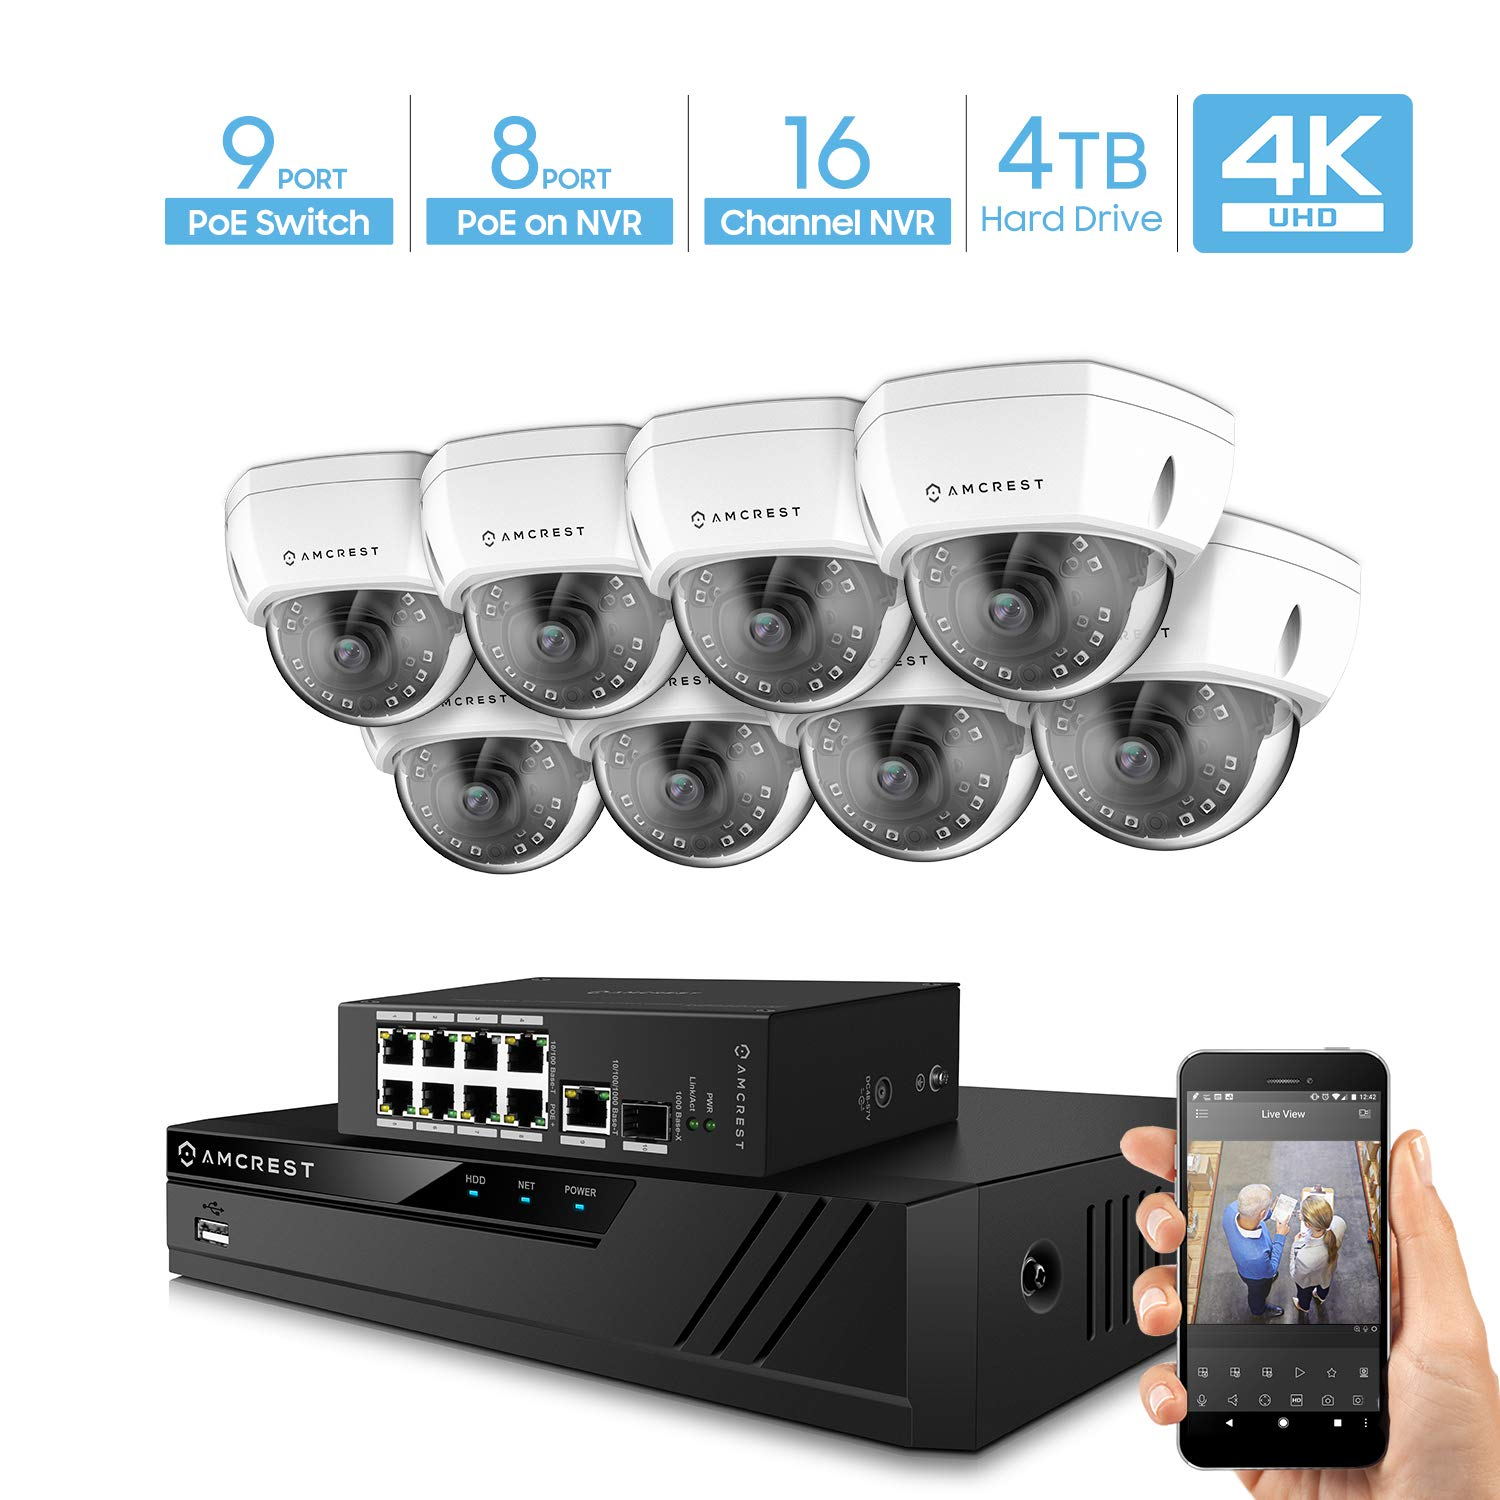 Amcrest 4K UltraHD Video Security Camera System w 4K 16CH PoE NVR, 8 x 4K Dome IP PoE Cameras, 9-Port PoE Switch w Gigabit Uplink, Pre-Installed 4TB Hard Drive Supports up to 6TB White